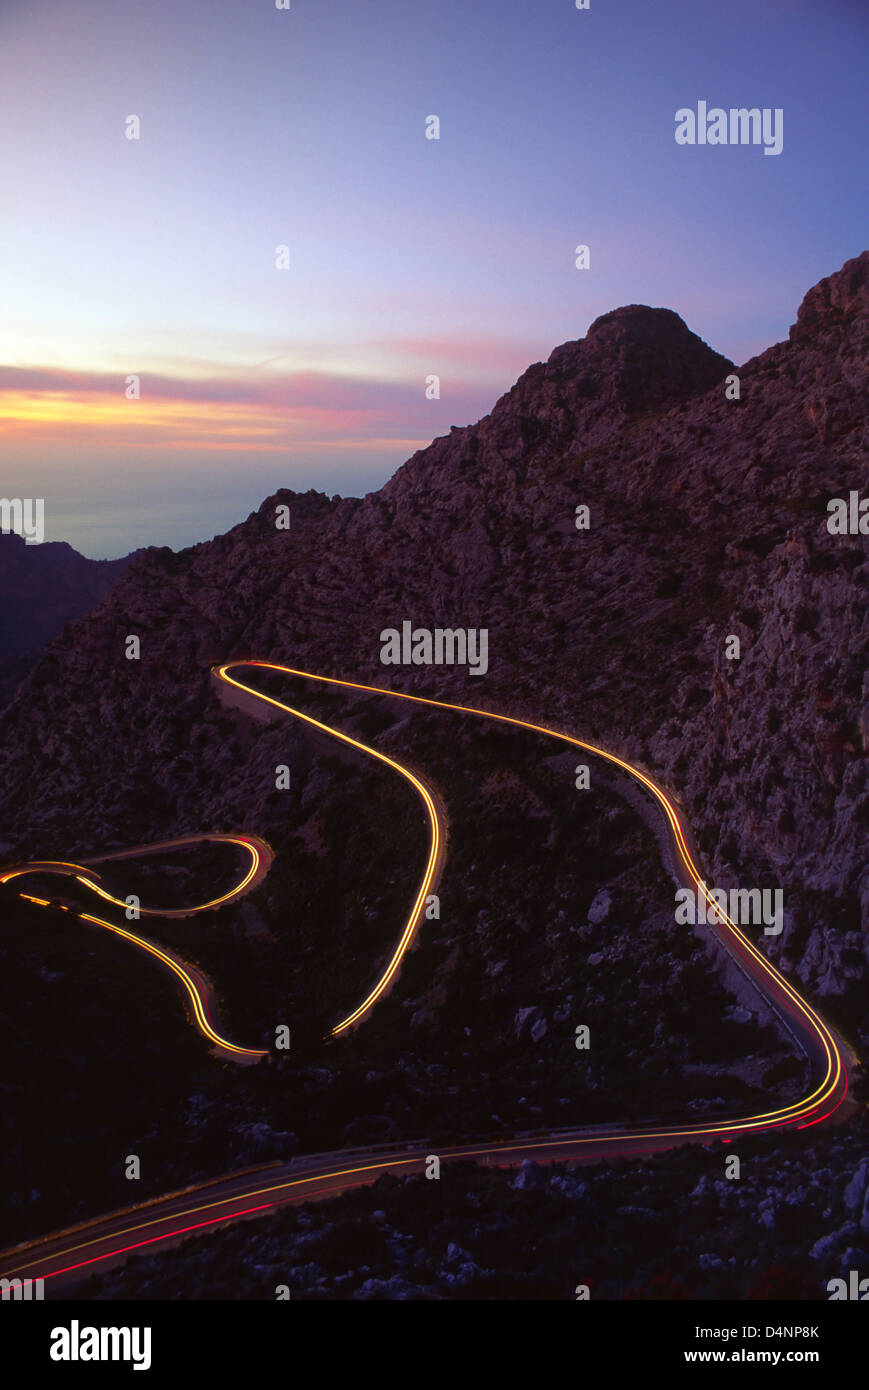 Light trails from a car on the mountain road to Sa Calobra, Mallorca, Balearic Islands, Spain. - Stock Image